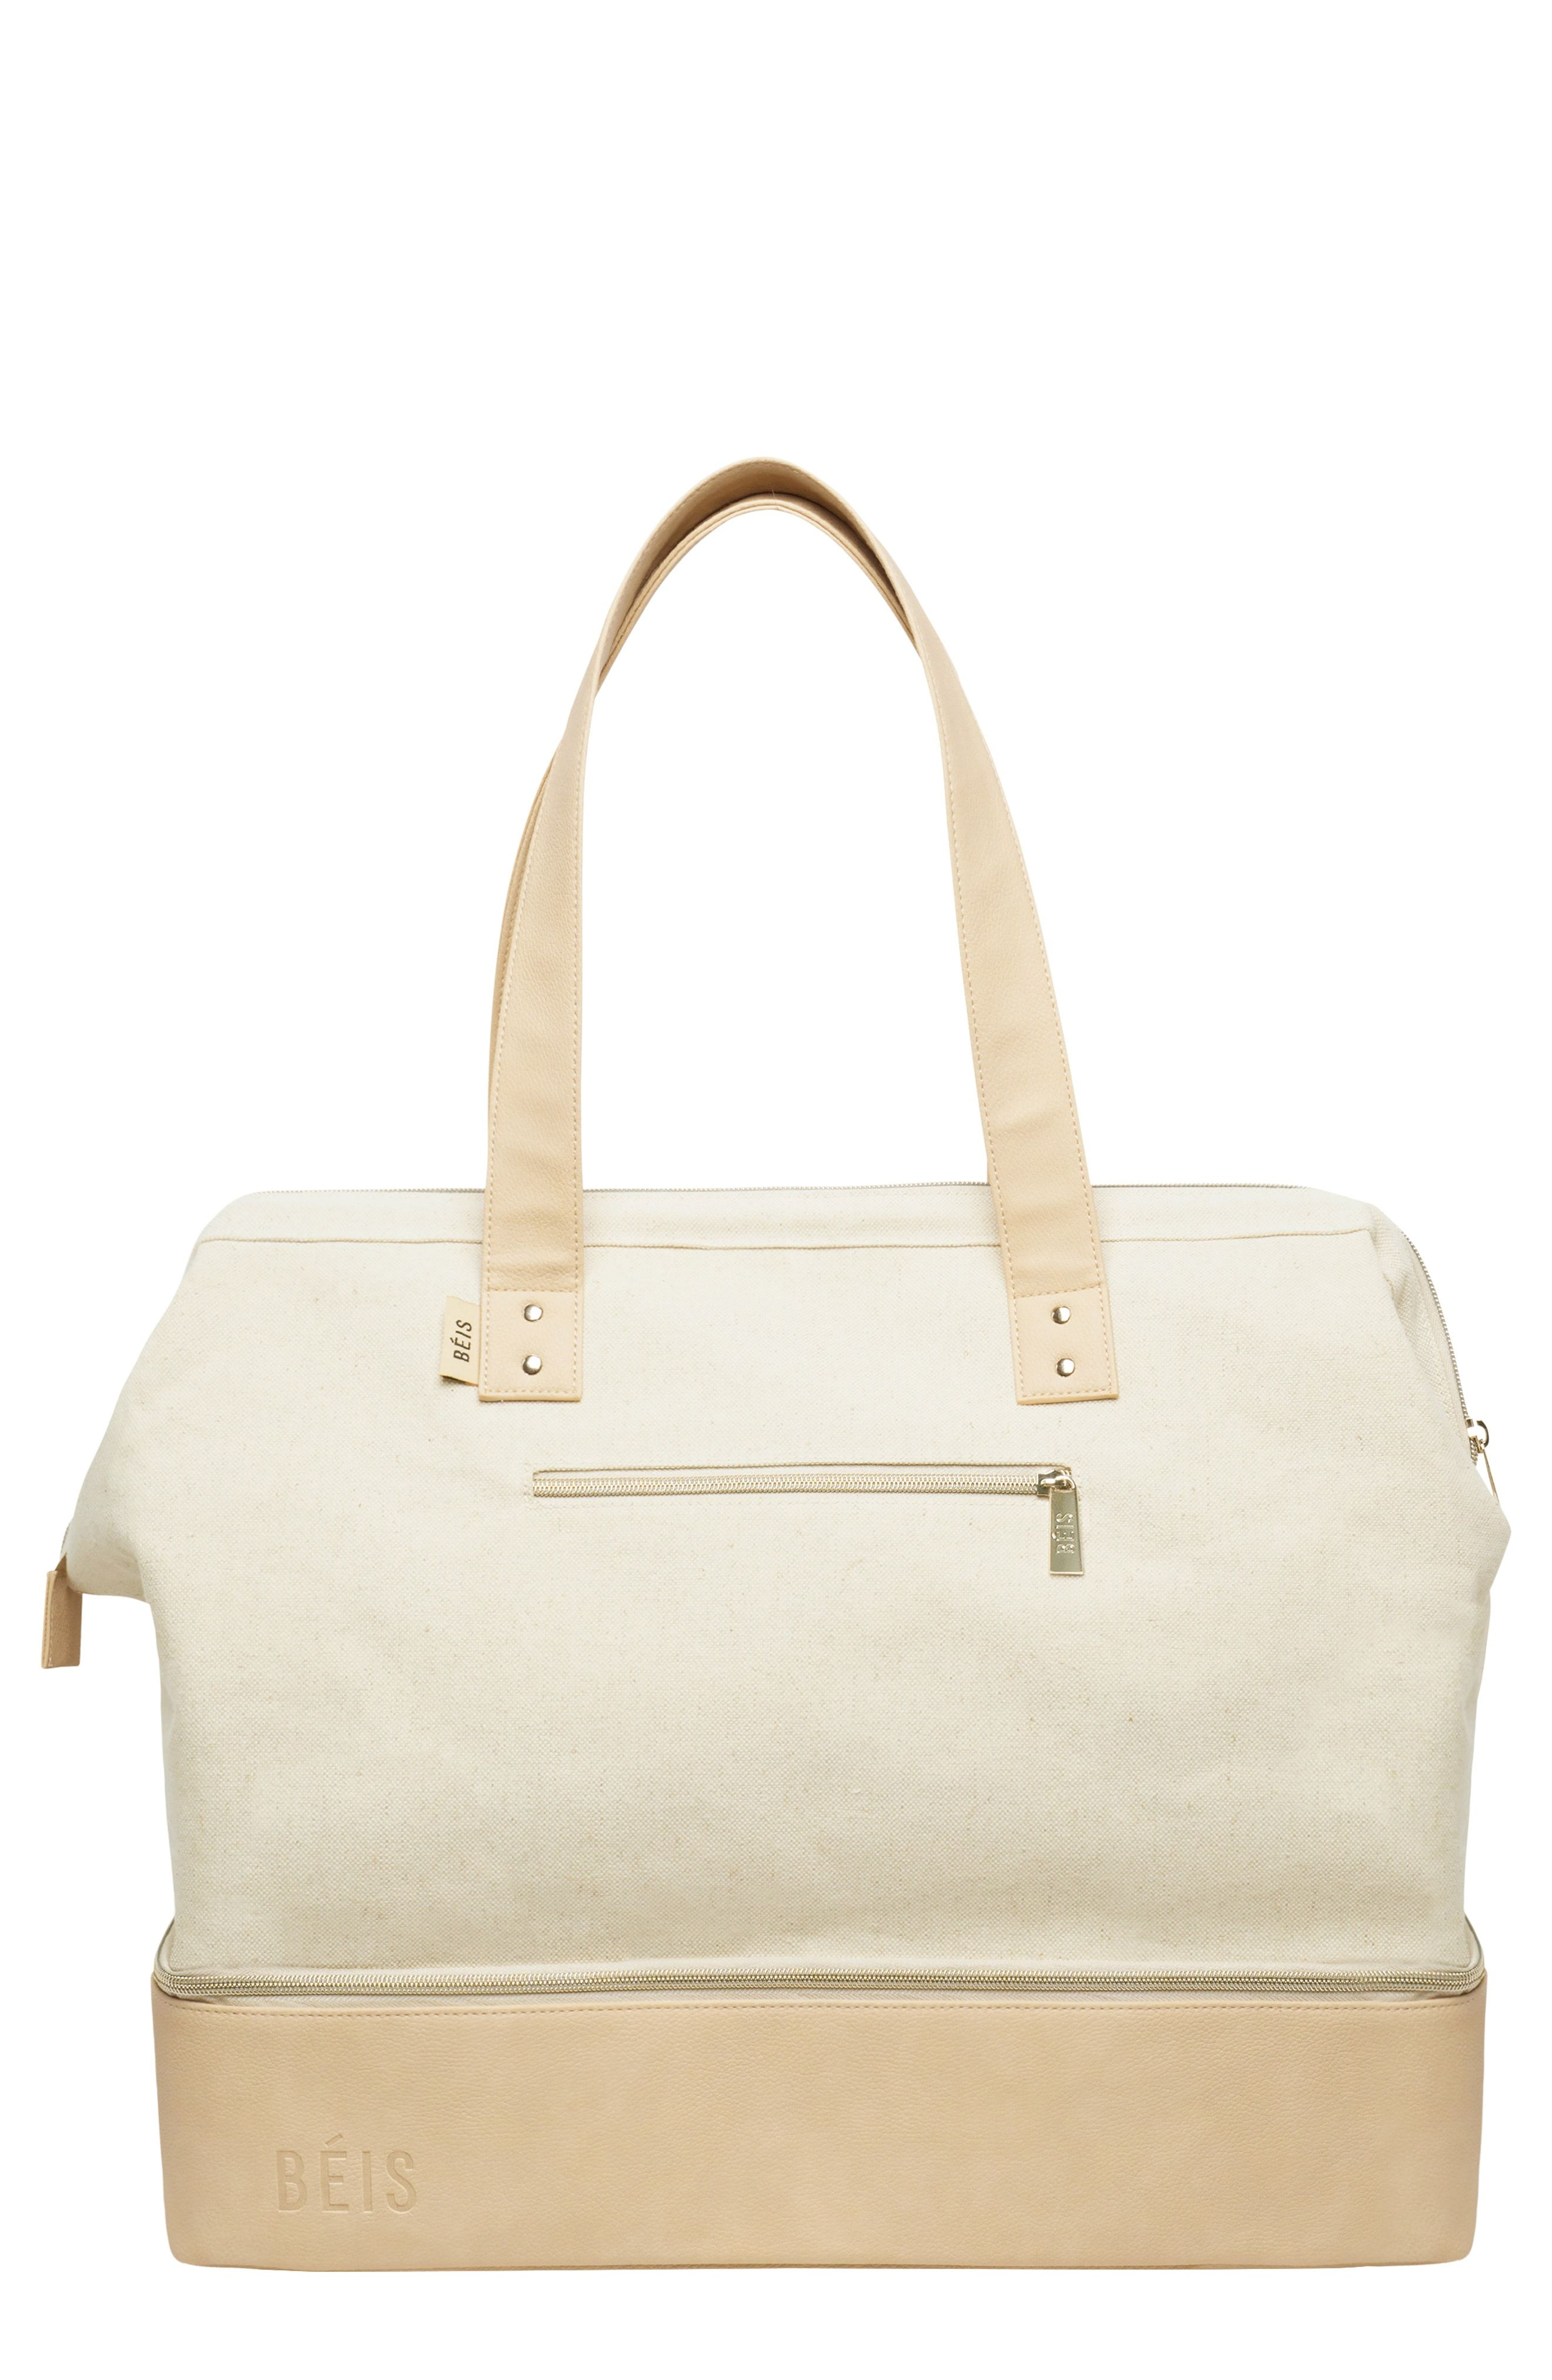 Beis Travel Multi Function Weekend Bag Available At